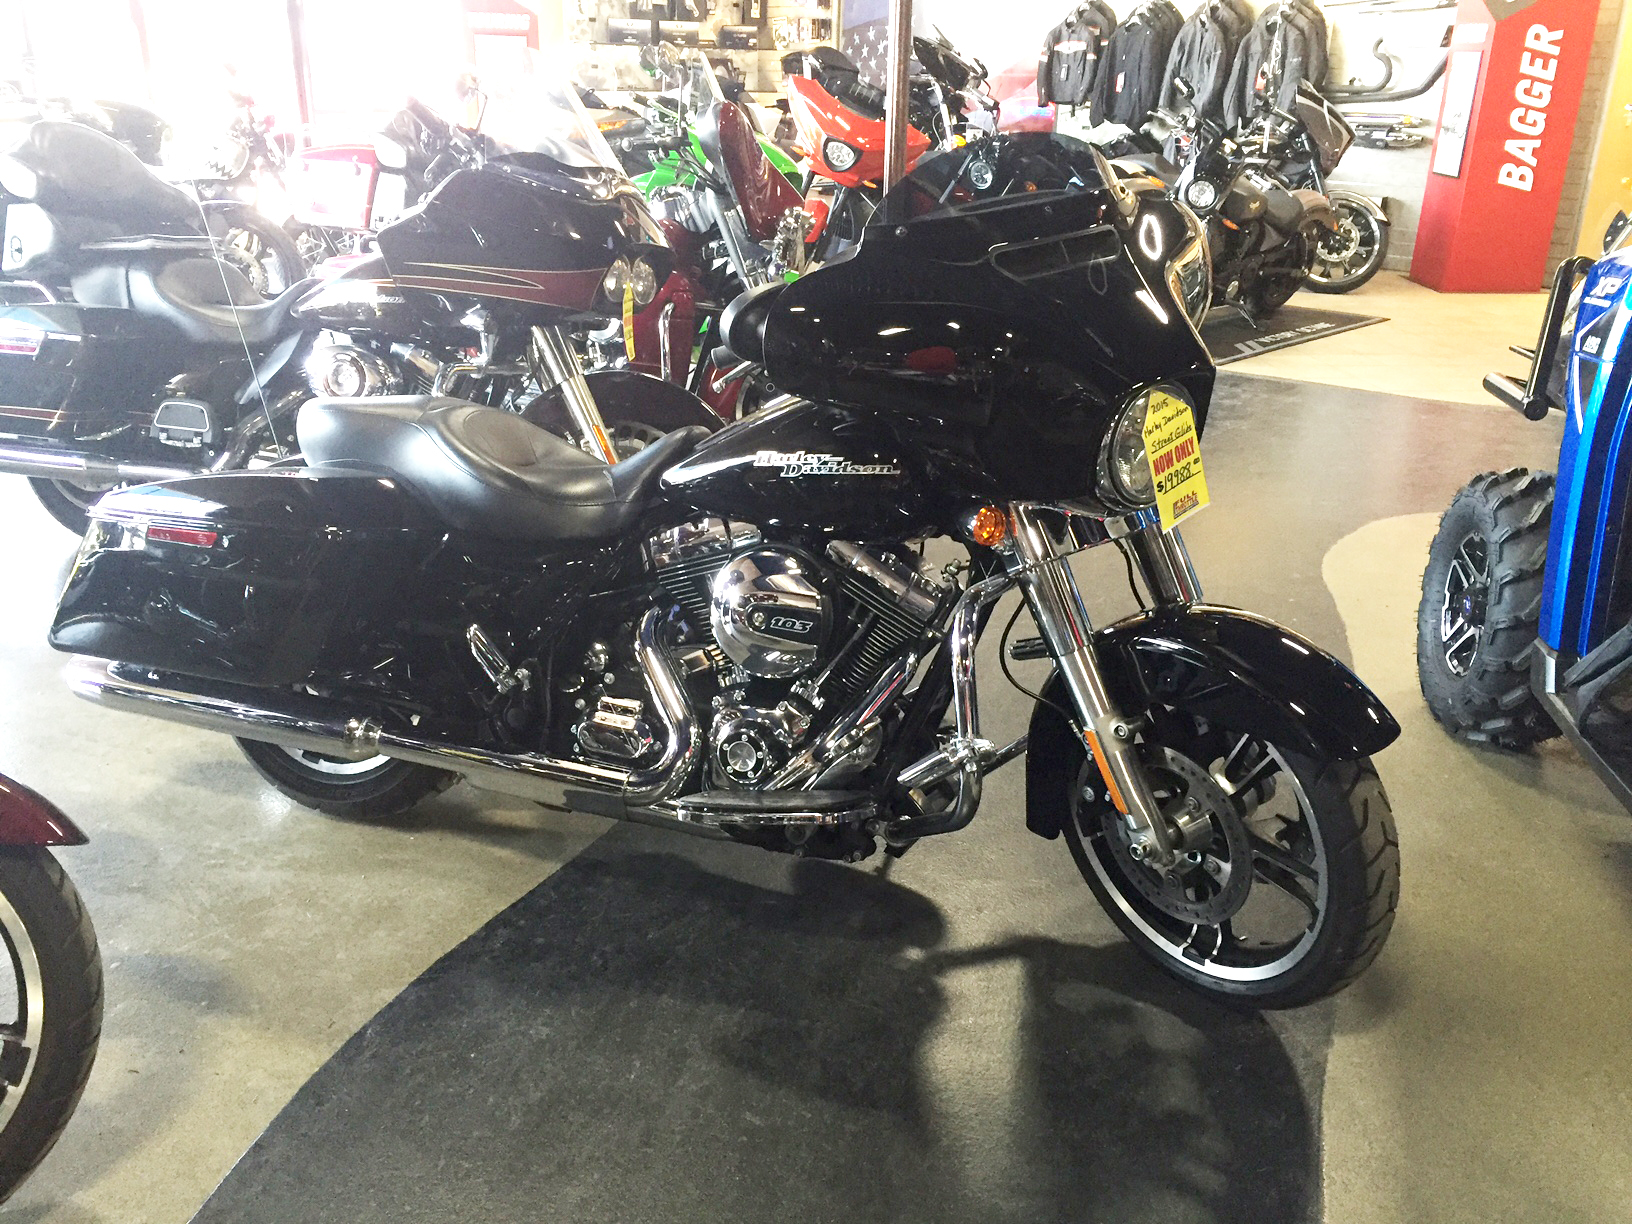 2015 HARLEY-DAVIDSON Street Glide FLHX low low miles vivid black this ones a steal 0 down fi